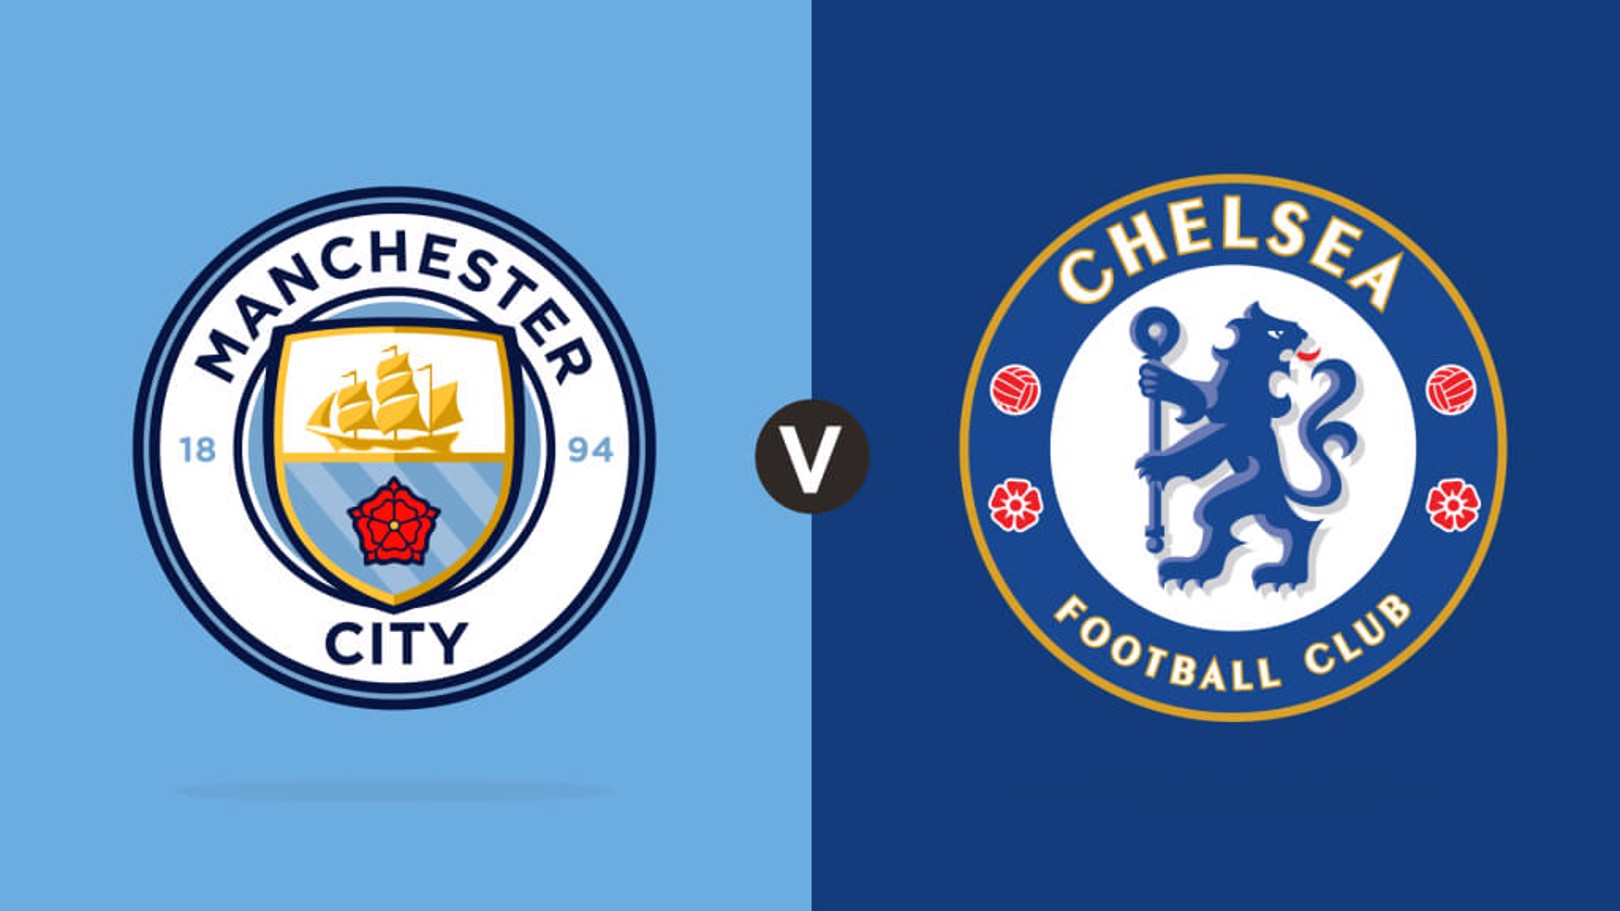 City v Chelsea: Match and player stats